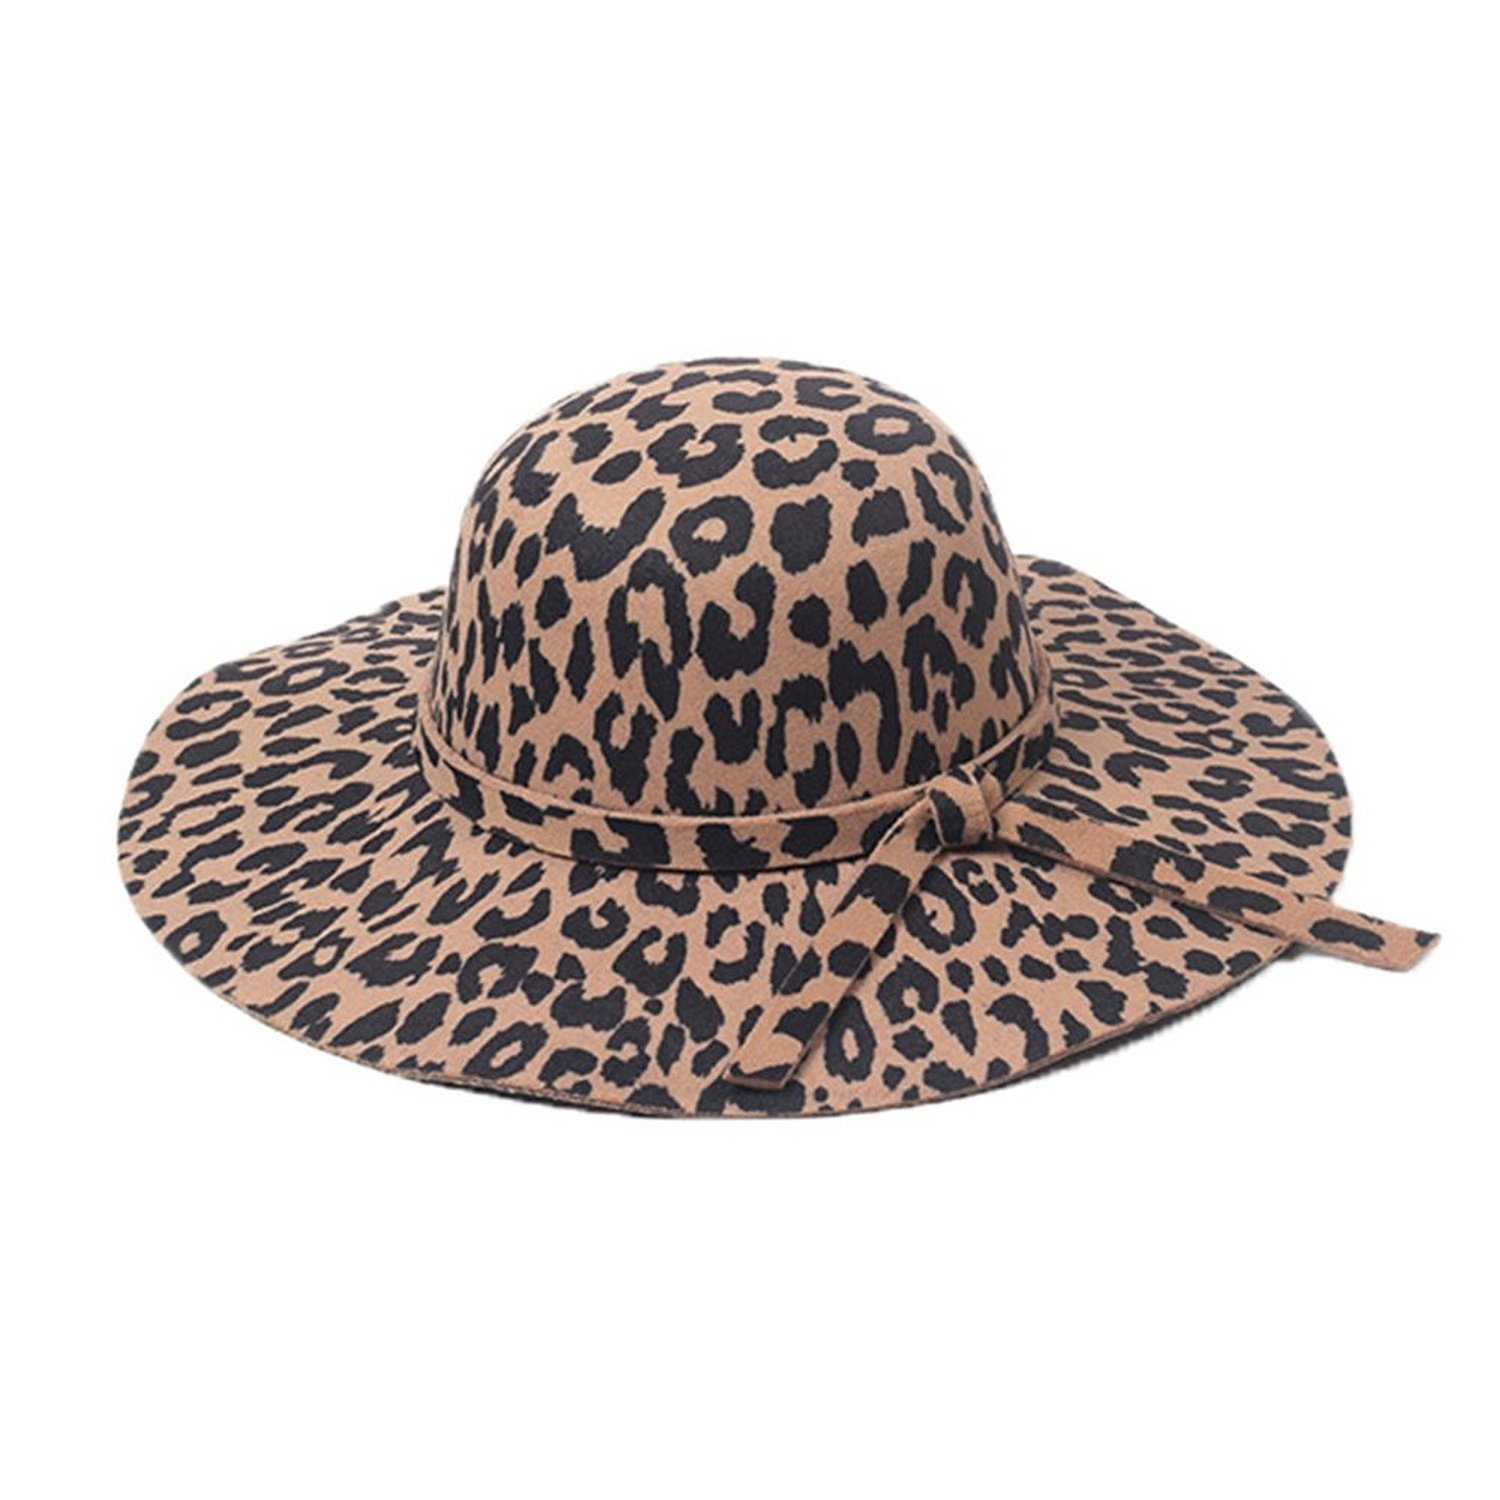 ca967b04f ZHENXIA Women' Wide Brim Leopard Print Floppy Kentucky Derby Floppy Hat (#2  LightBrown) at Amazon Women's Clothing store: